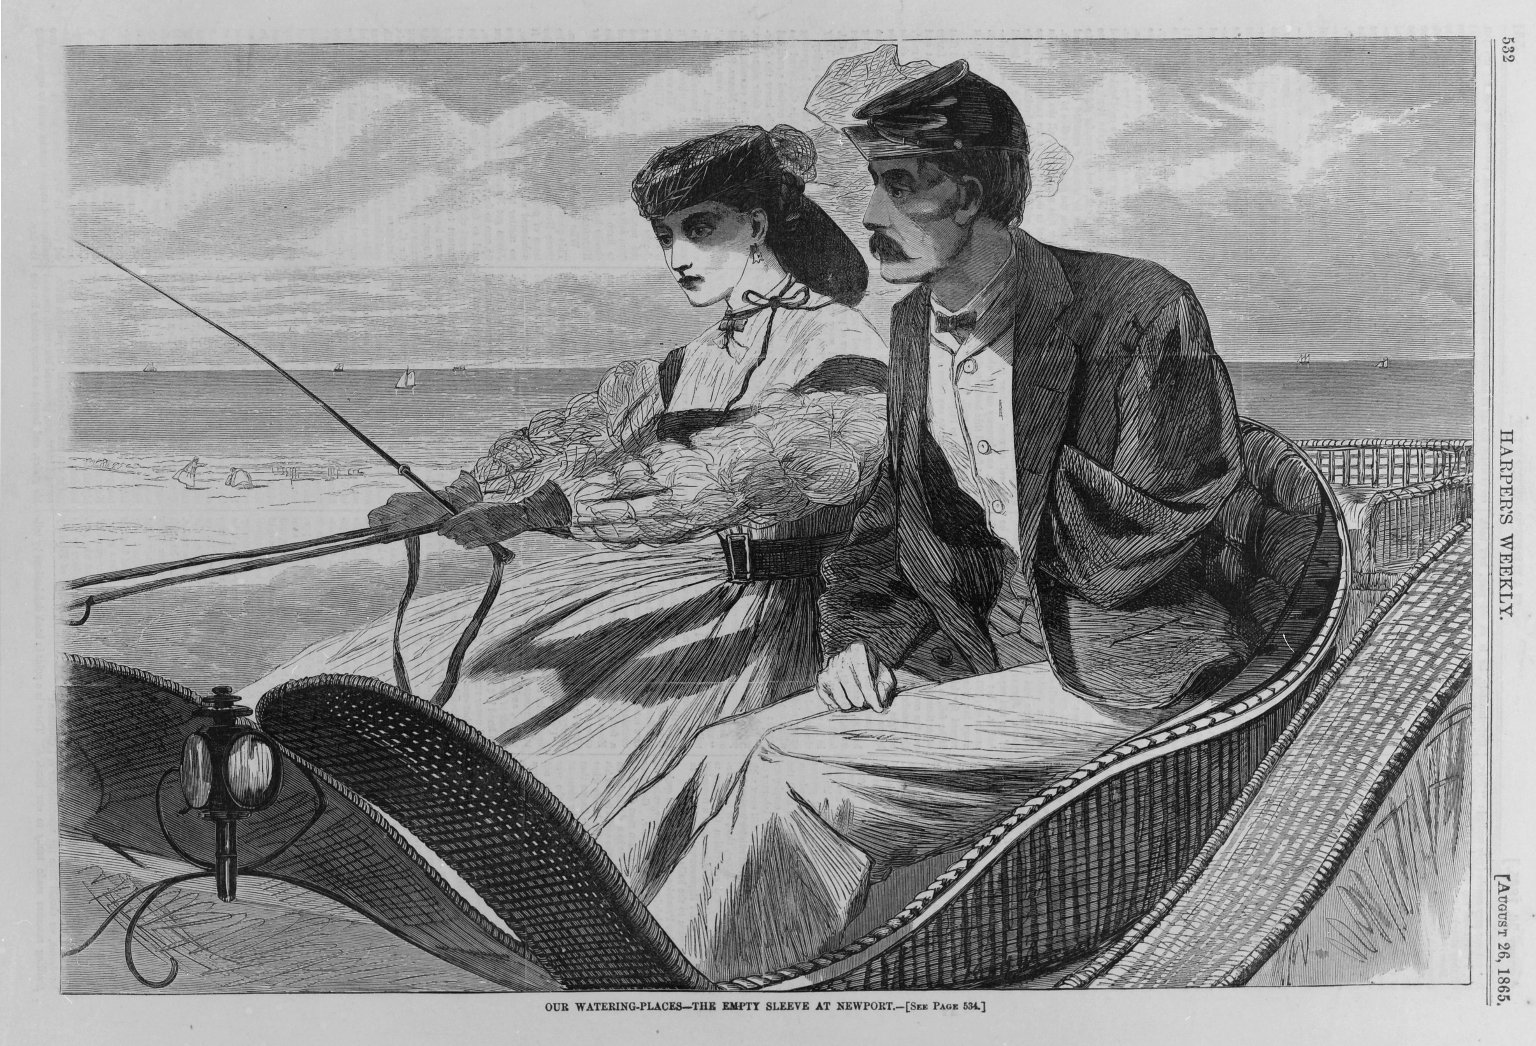 """This image accompanied a story in  Harper's Weekly  in which a captain returns home from war to find that his wife has learned to drive a horse and buggy. That's probably for the best, given that he's now missing an arm - a common sight after the Civil War. But as you can see, neither of them looks happy. Maybe that's because this husband struggles with his wife's newfound independence. Or maybe it's because her corset is cinched much too tight.   """"Our Watering Places--The Empty Sleeve at Newport,"""" 1865 by Winslow Homer (American, 1836-1910). Wood engraving. Courtesy of Brooklyn Museum, Gift of Harvey Isbitts."""